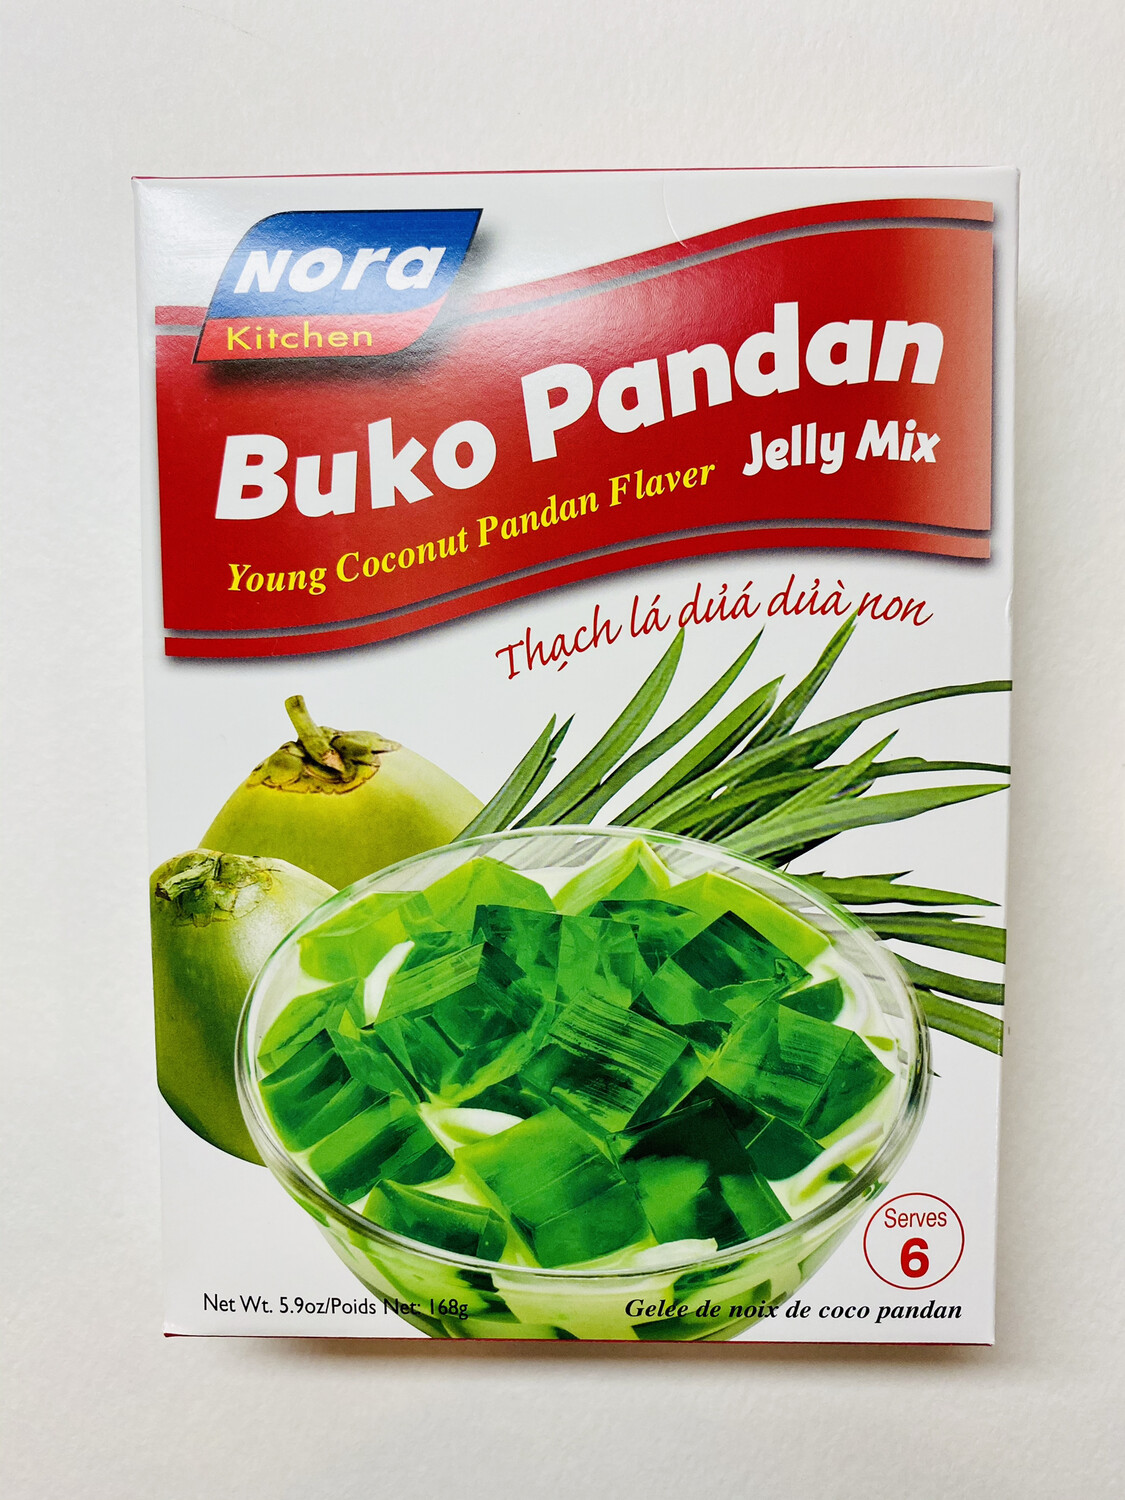 Nora Kitchen - Buko Pandan - 168 Grams